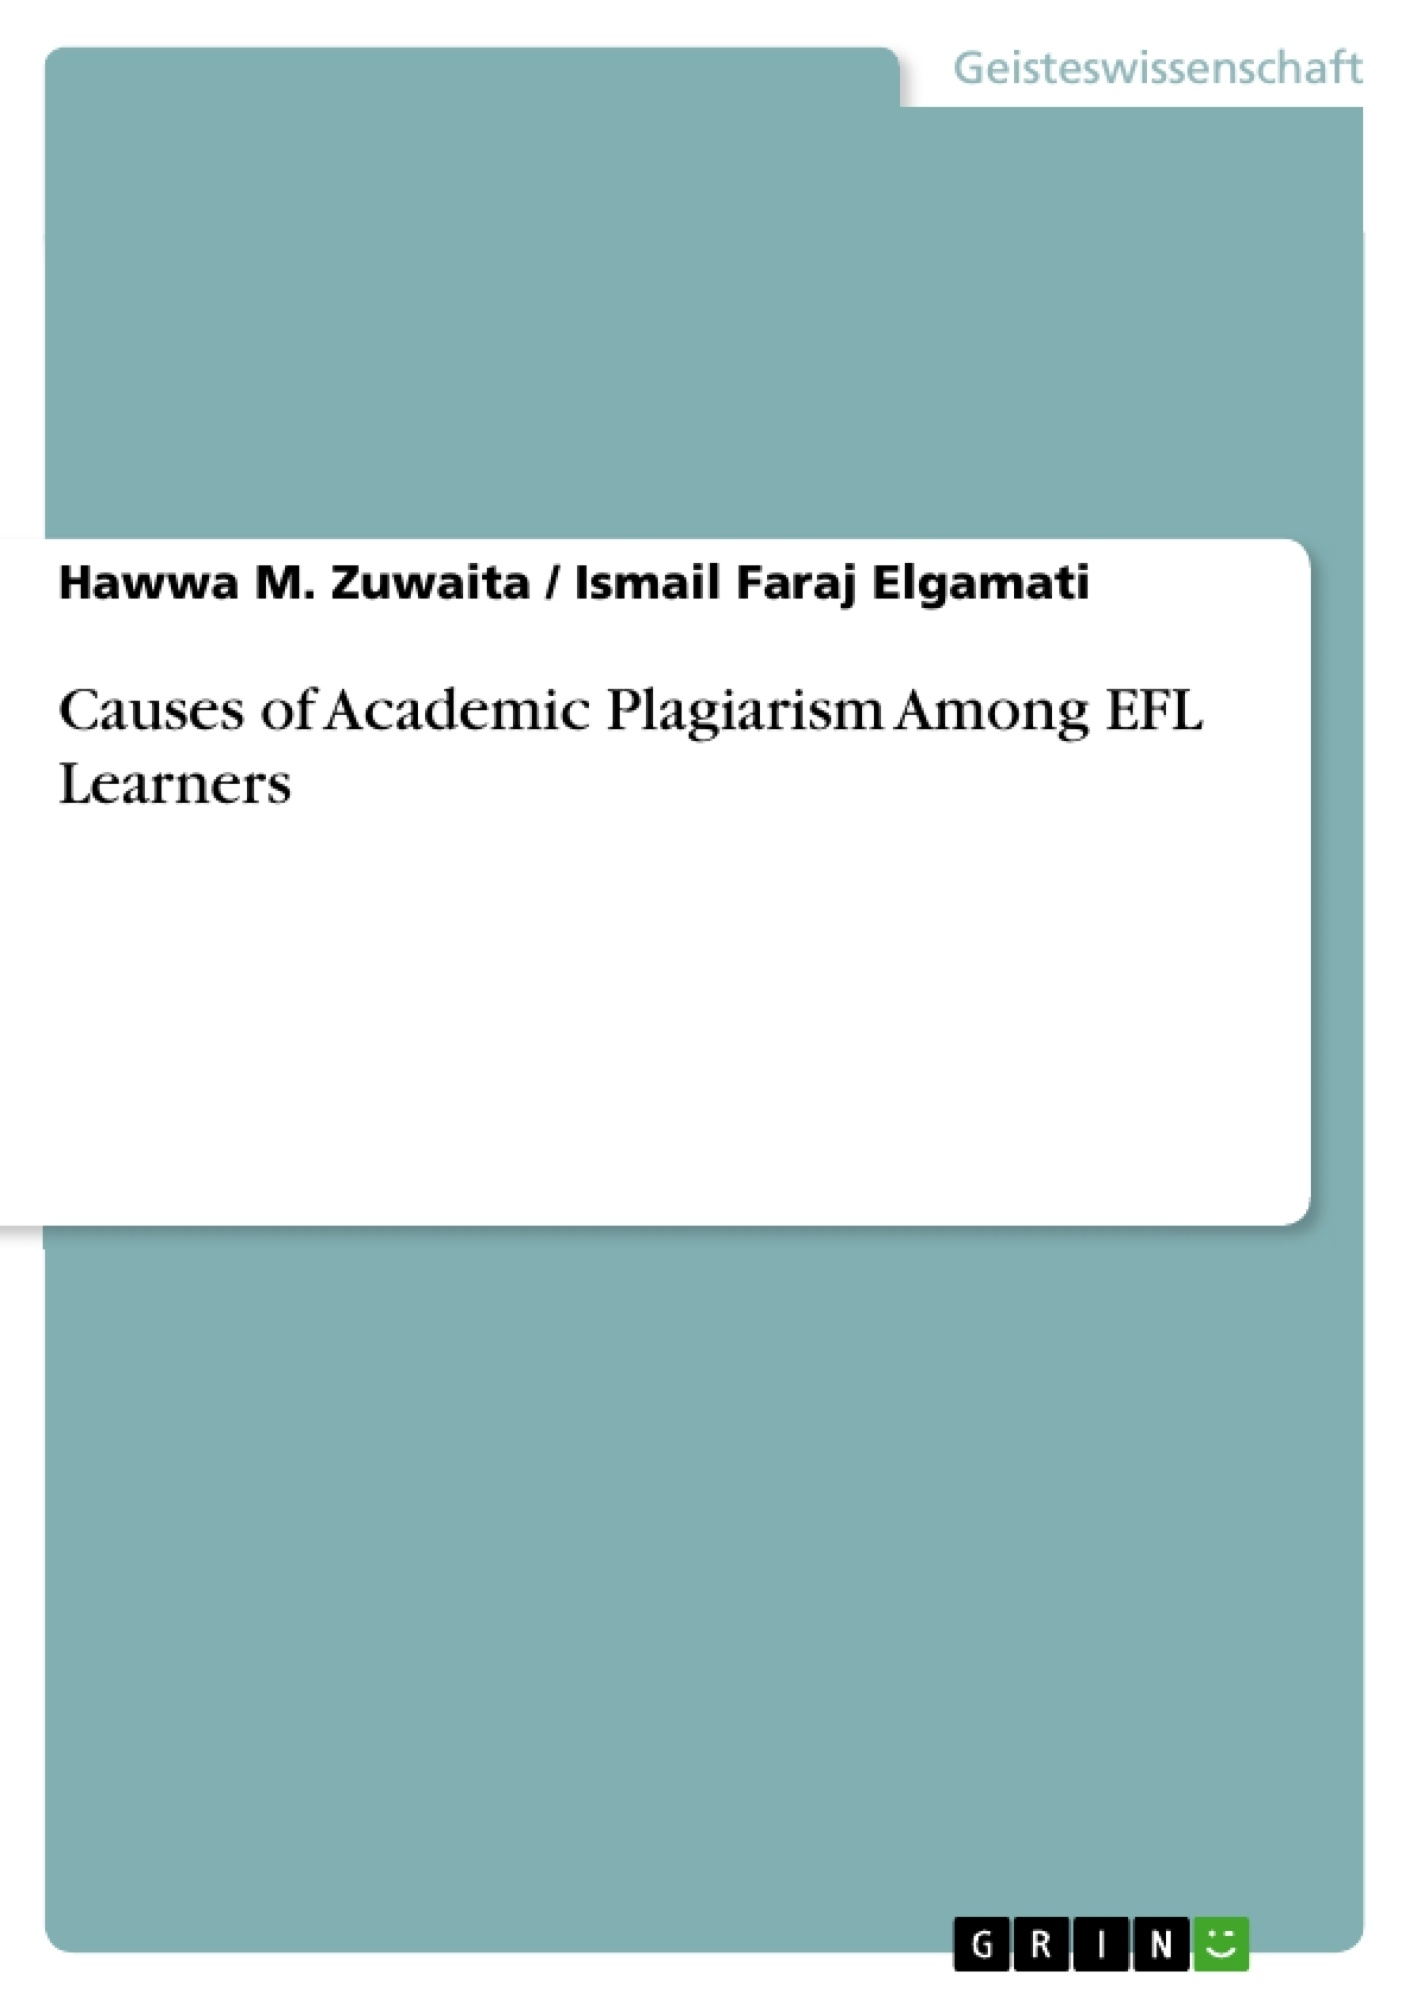 Titel: Causes of Academic Plagiarism Among EFL Learners